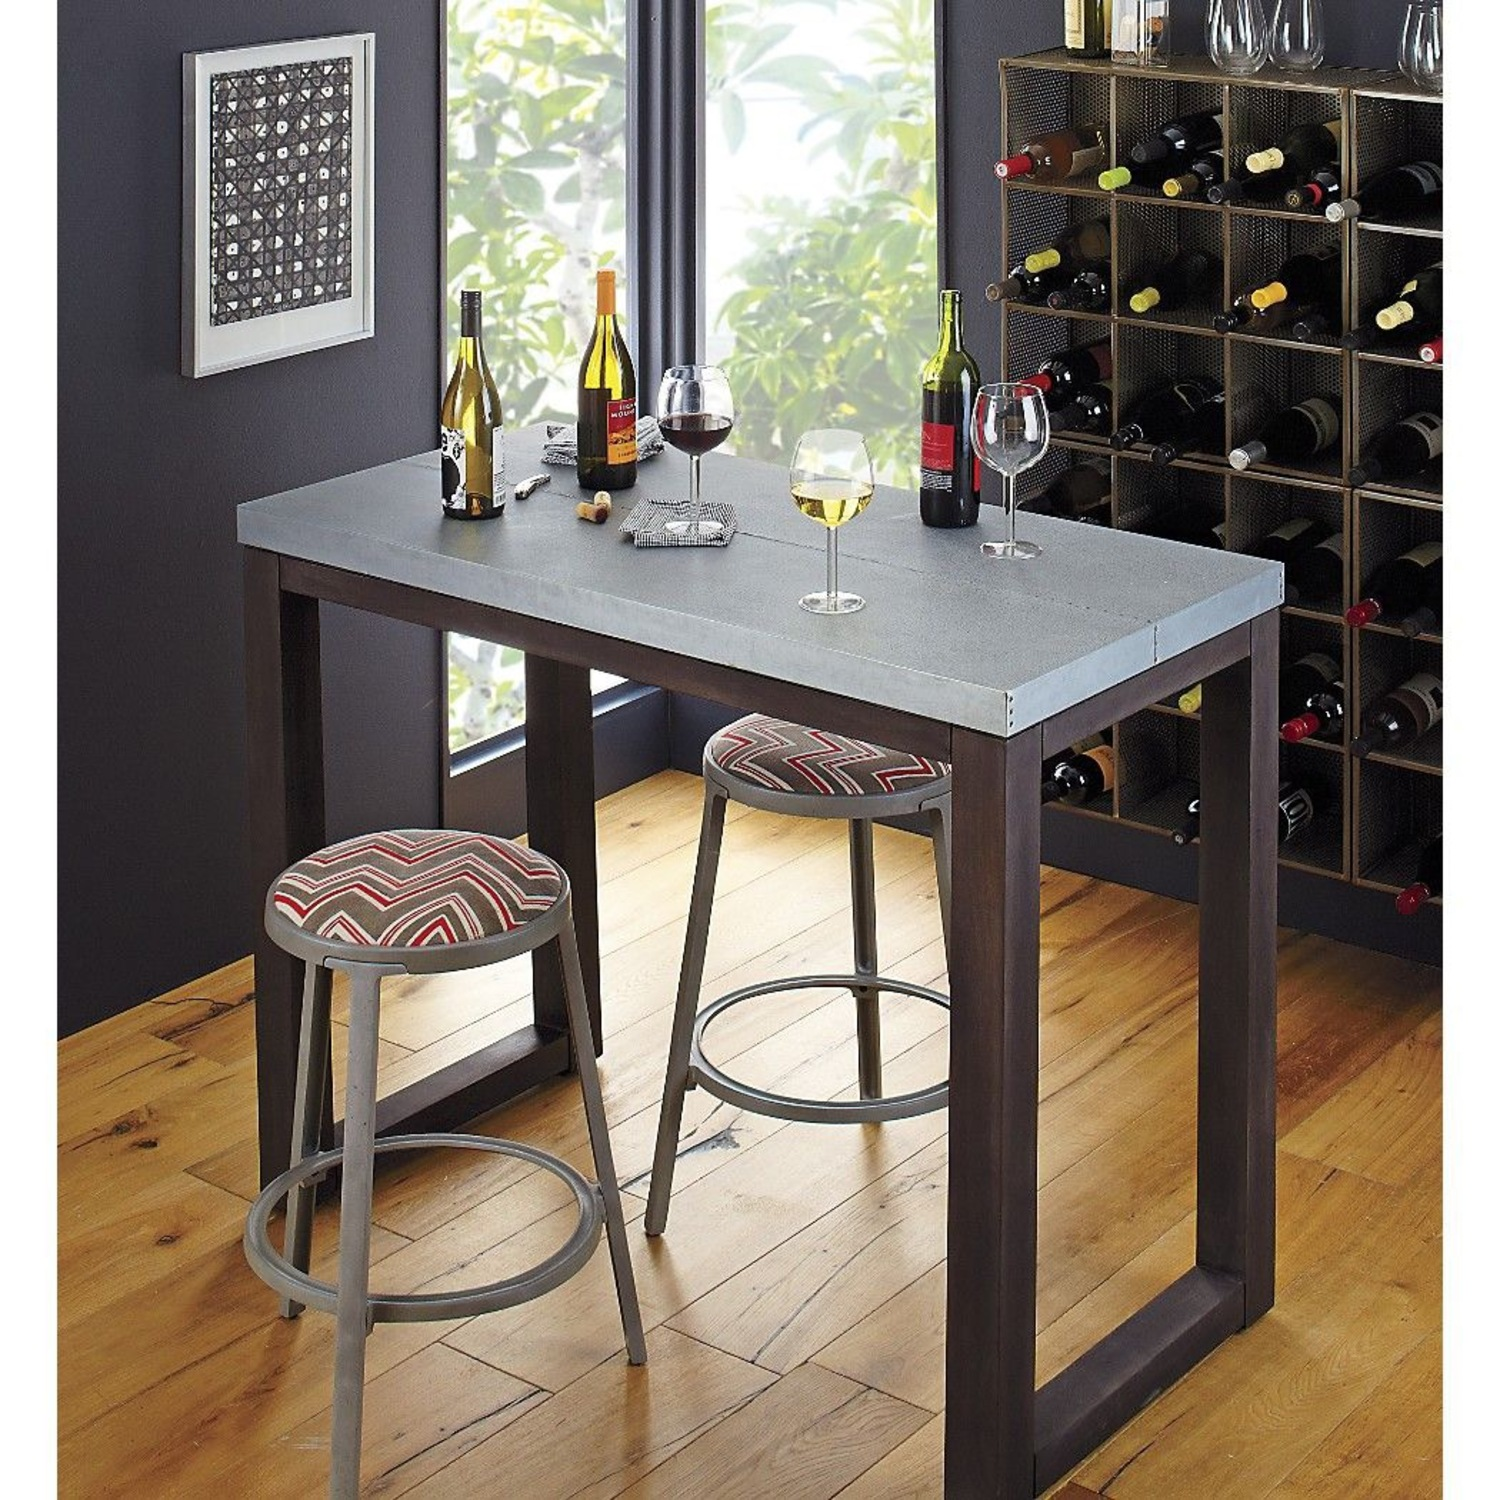 CB2 Stern High Counter Table - image-2